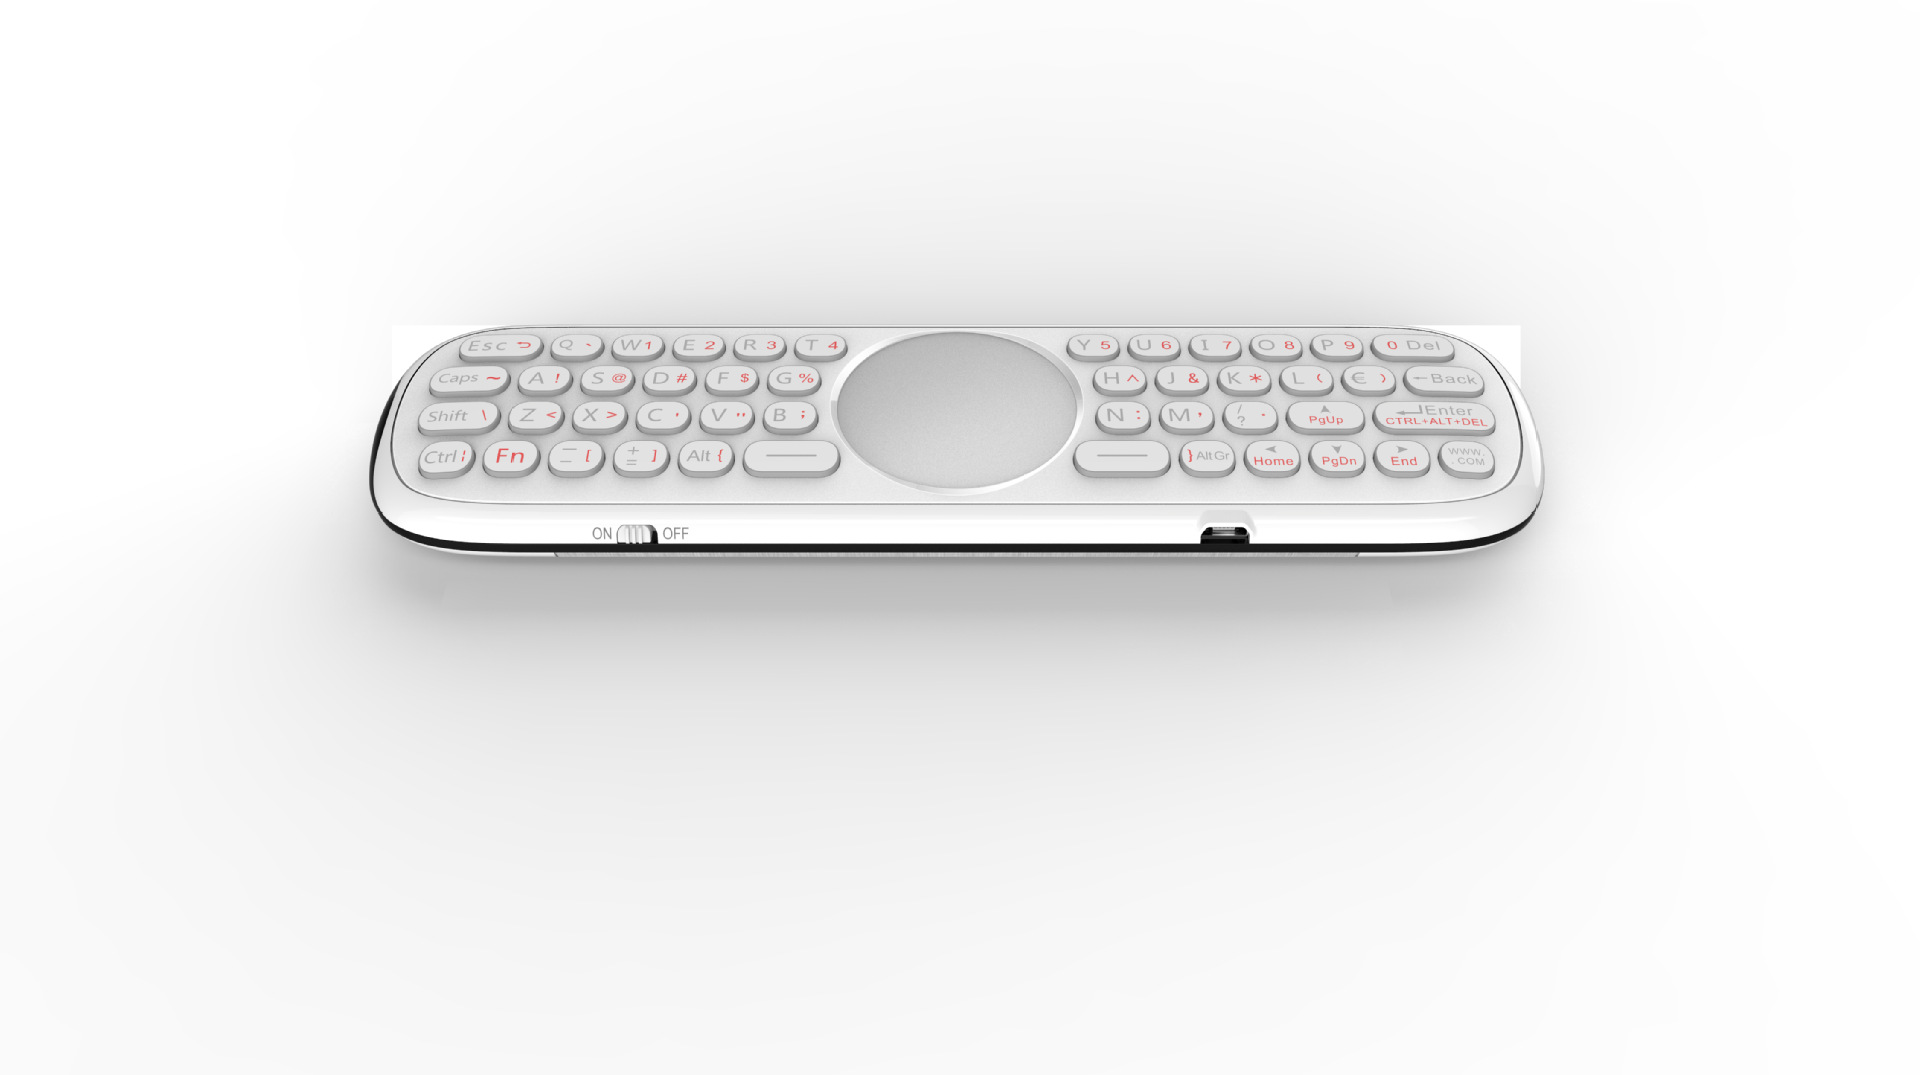 Top SaleWireless-Keyboard Remote-Control Somatosensory Backlight Double-Sided Q40 Set-Top-Box▀